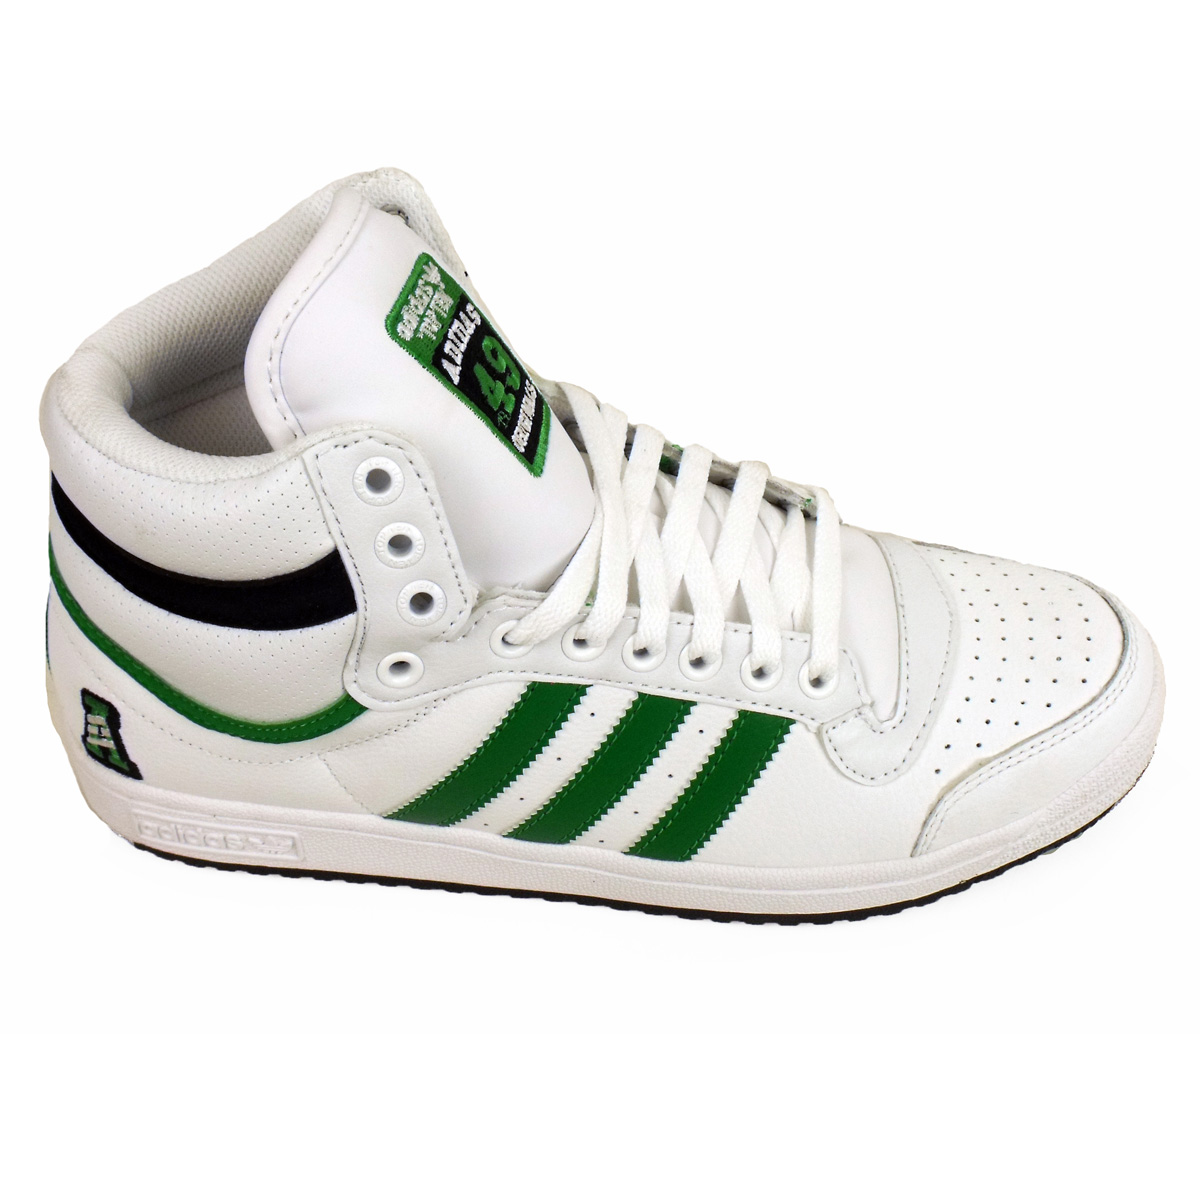 Mens Adidas Top Ten Hi Tops Basketball Boot Trainers Ankle Skate Shoe Trainer  eBay